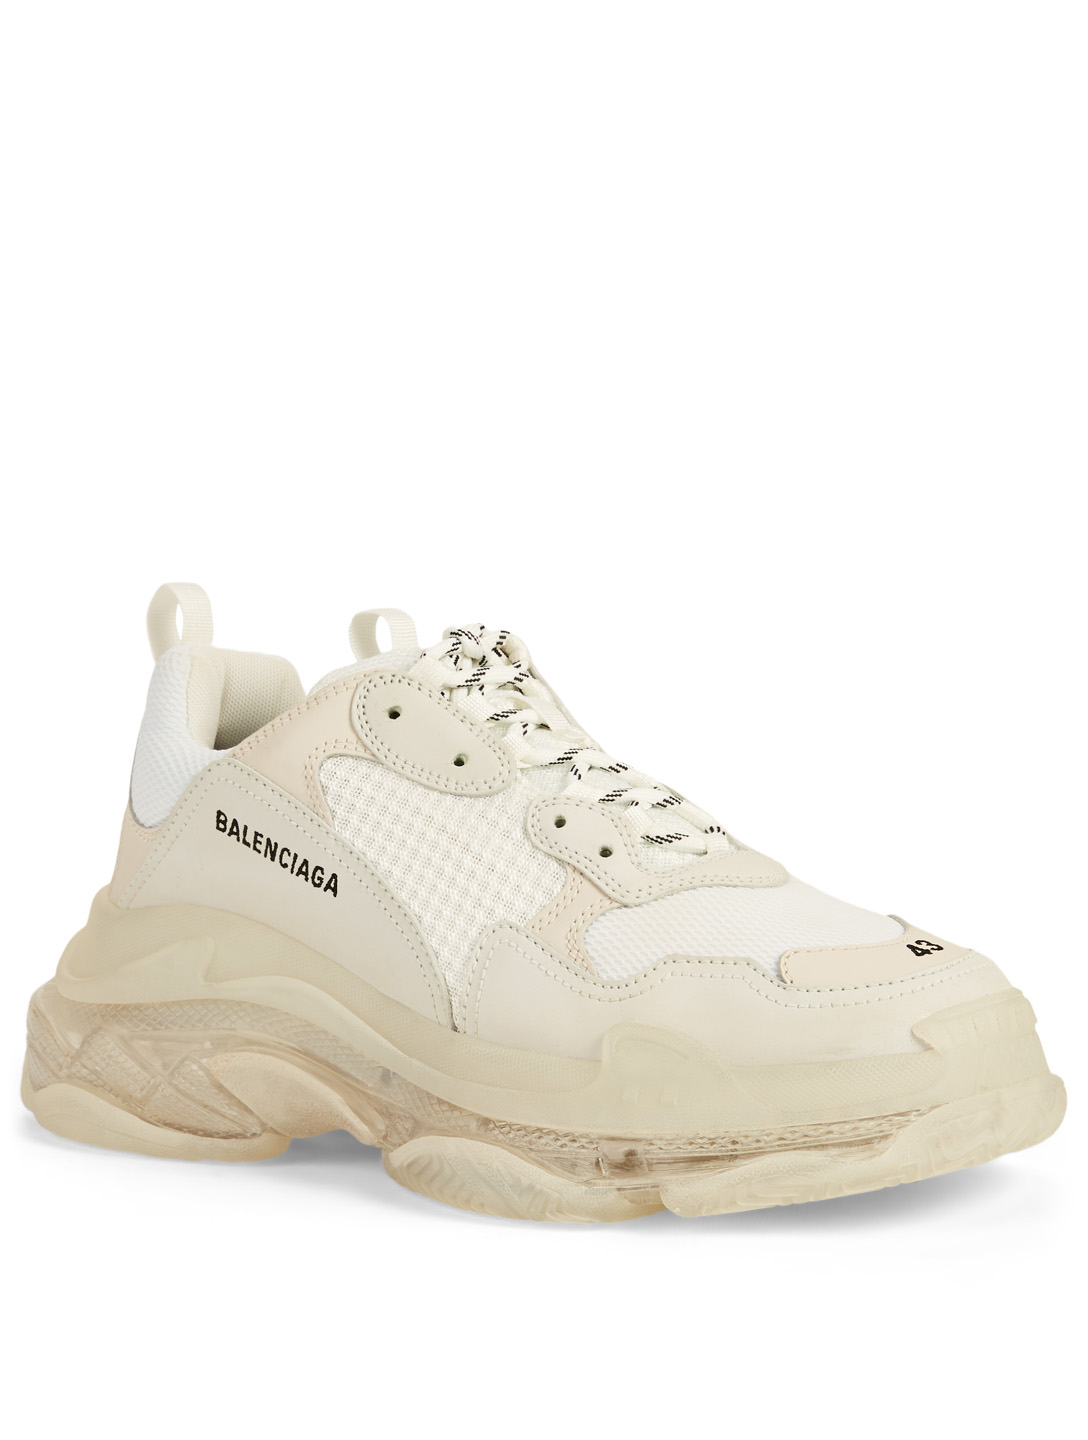 BALENCIAGA Triple S Sneakers Men's White